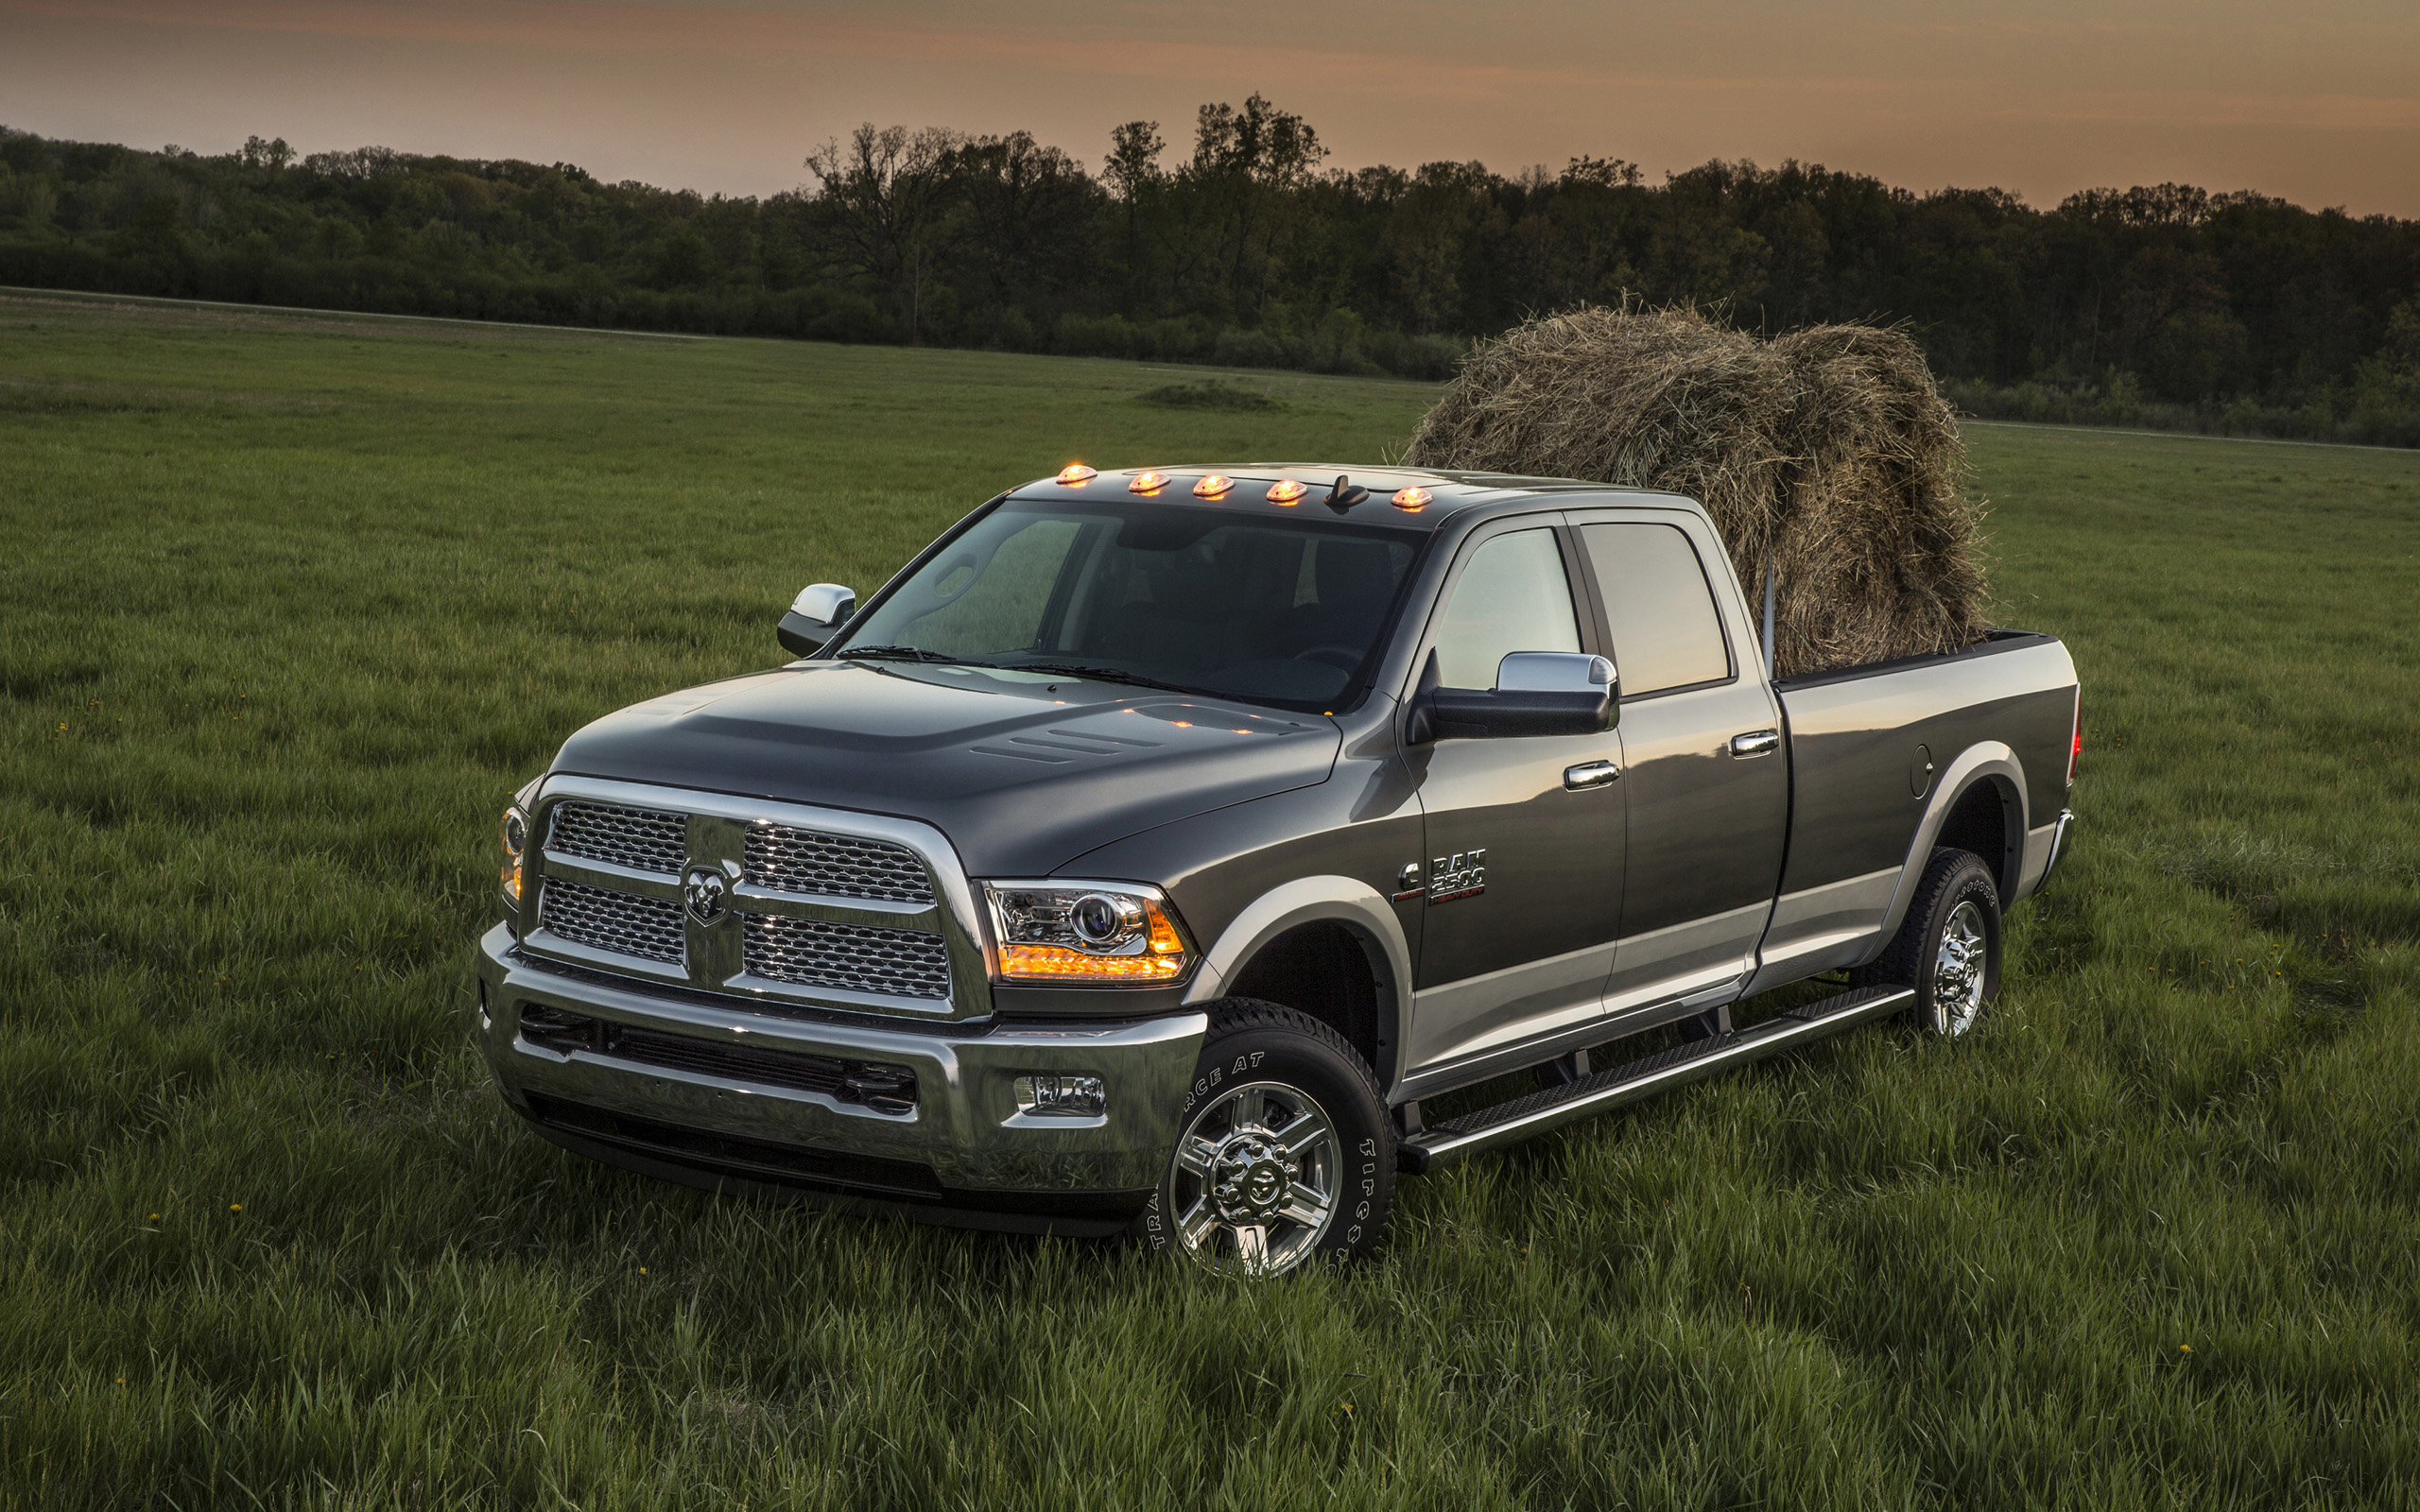 2013 Dodge Ram 2500 4x4 truck d wallpaper 2560x1600 112286 2560x1600